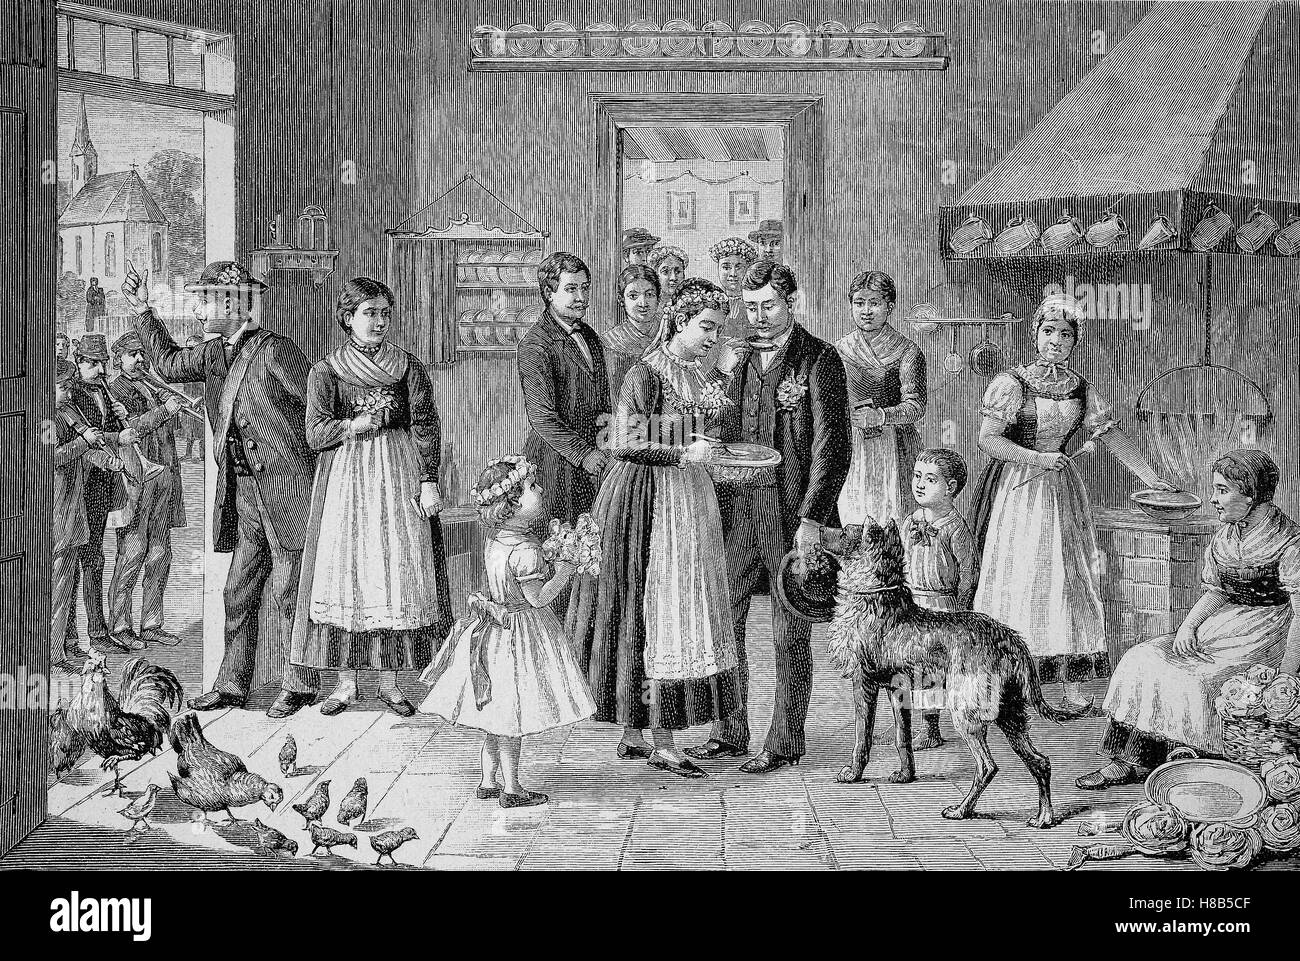 Wedding in Pomerania, Tradition: Bride Soup eating, Woodcut from 1892 - Stock Image